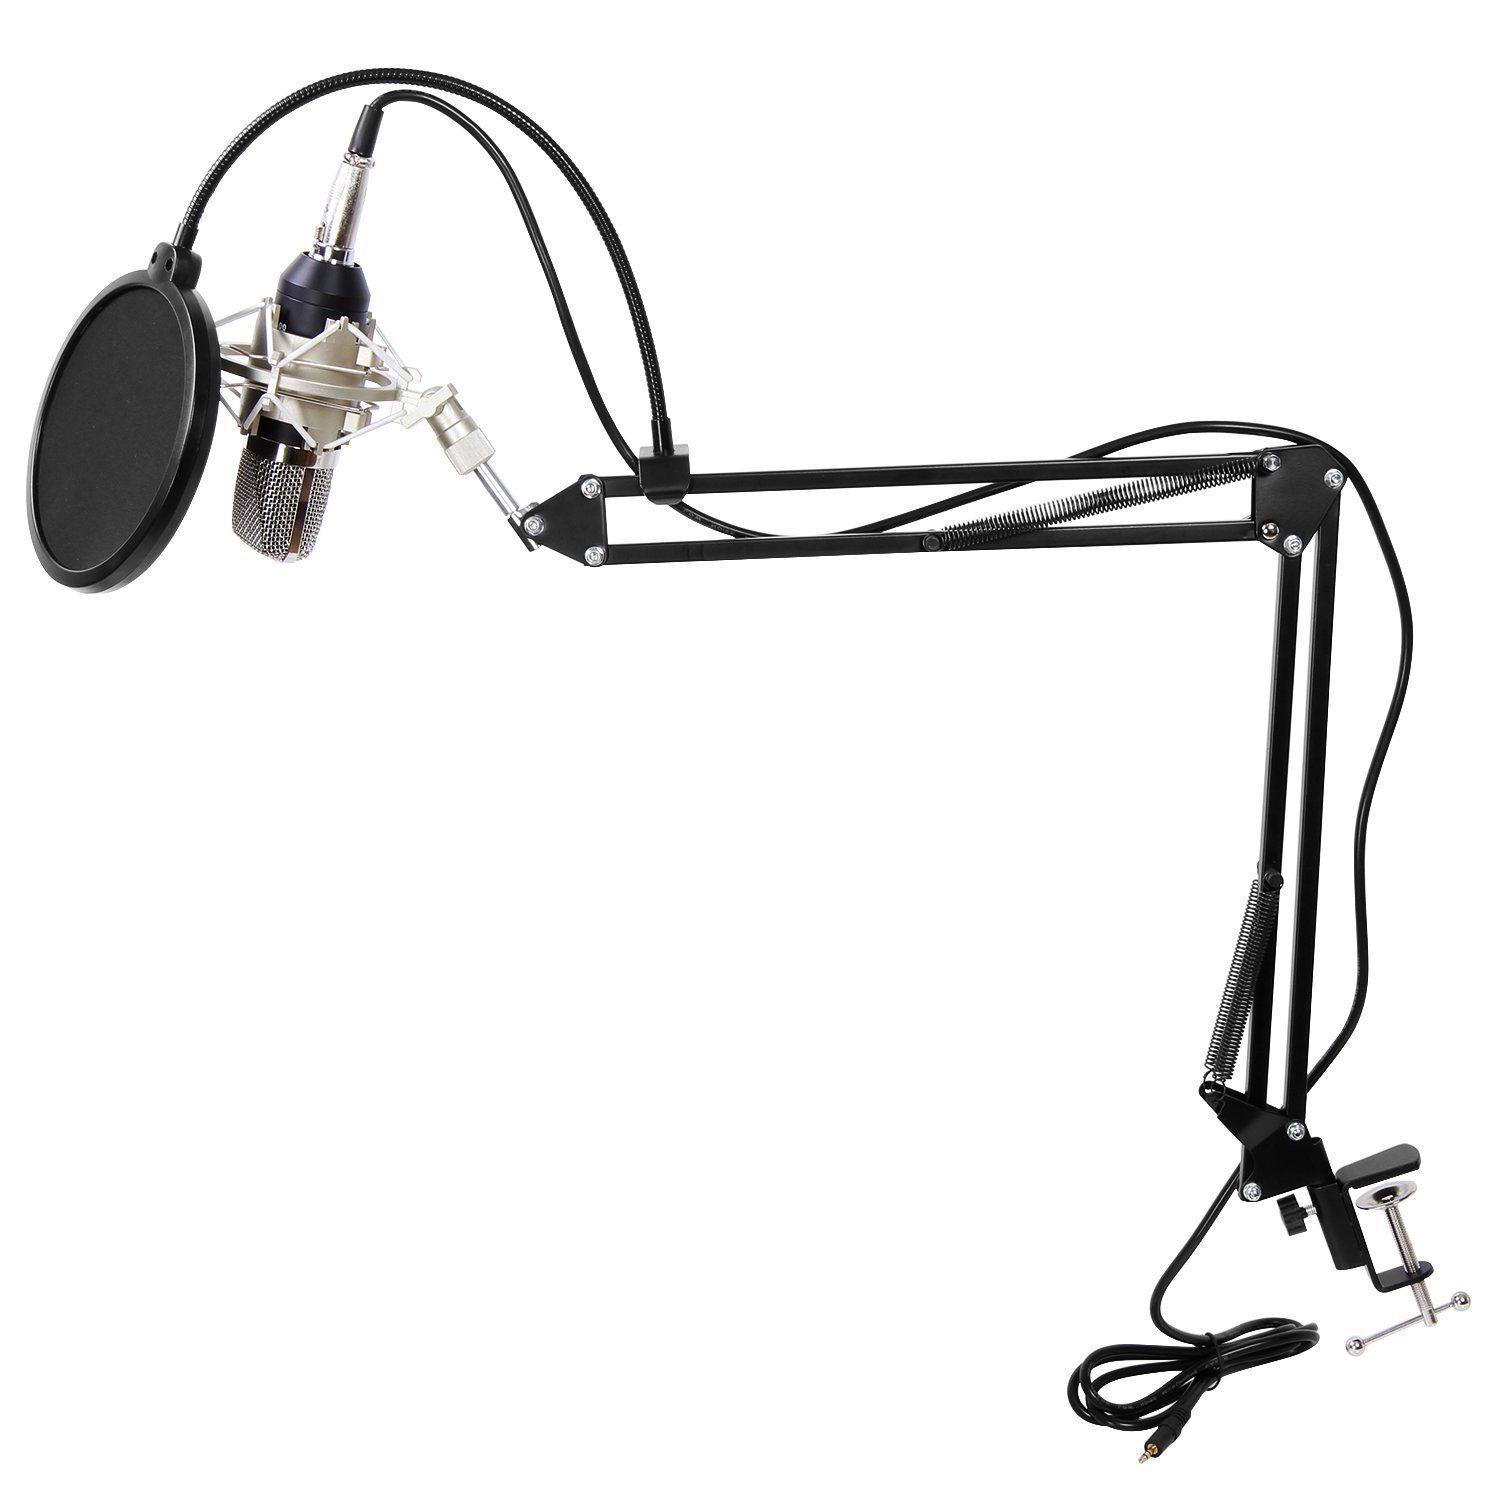 Podcasting Condenser Microphone with Anti Vibration Shock Mount Stand